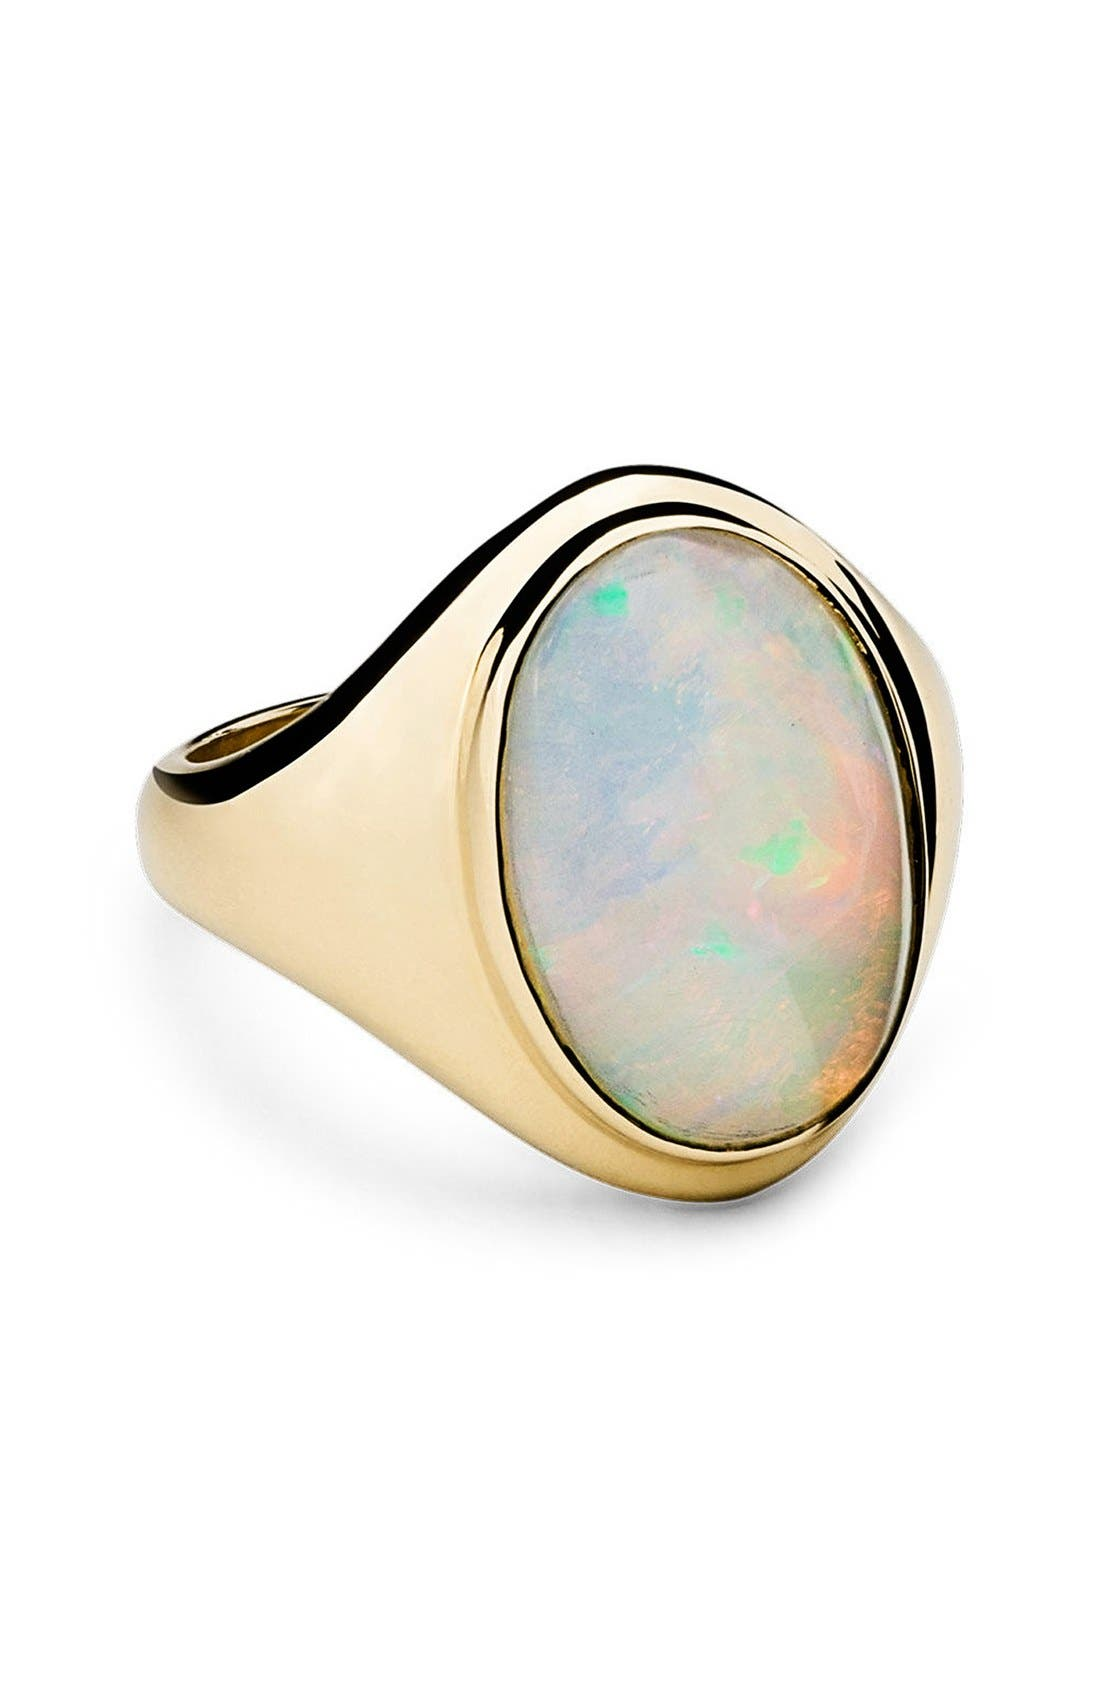 Main Image - Shinola Opal Signet Ring